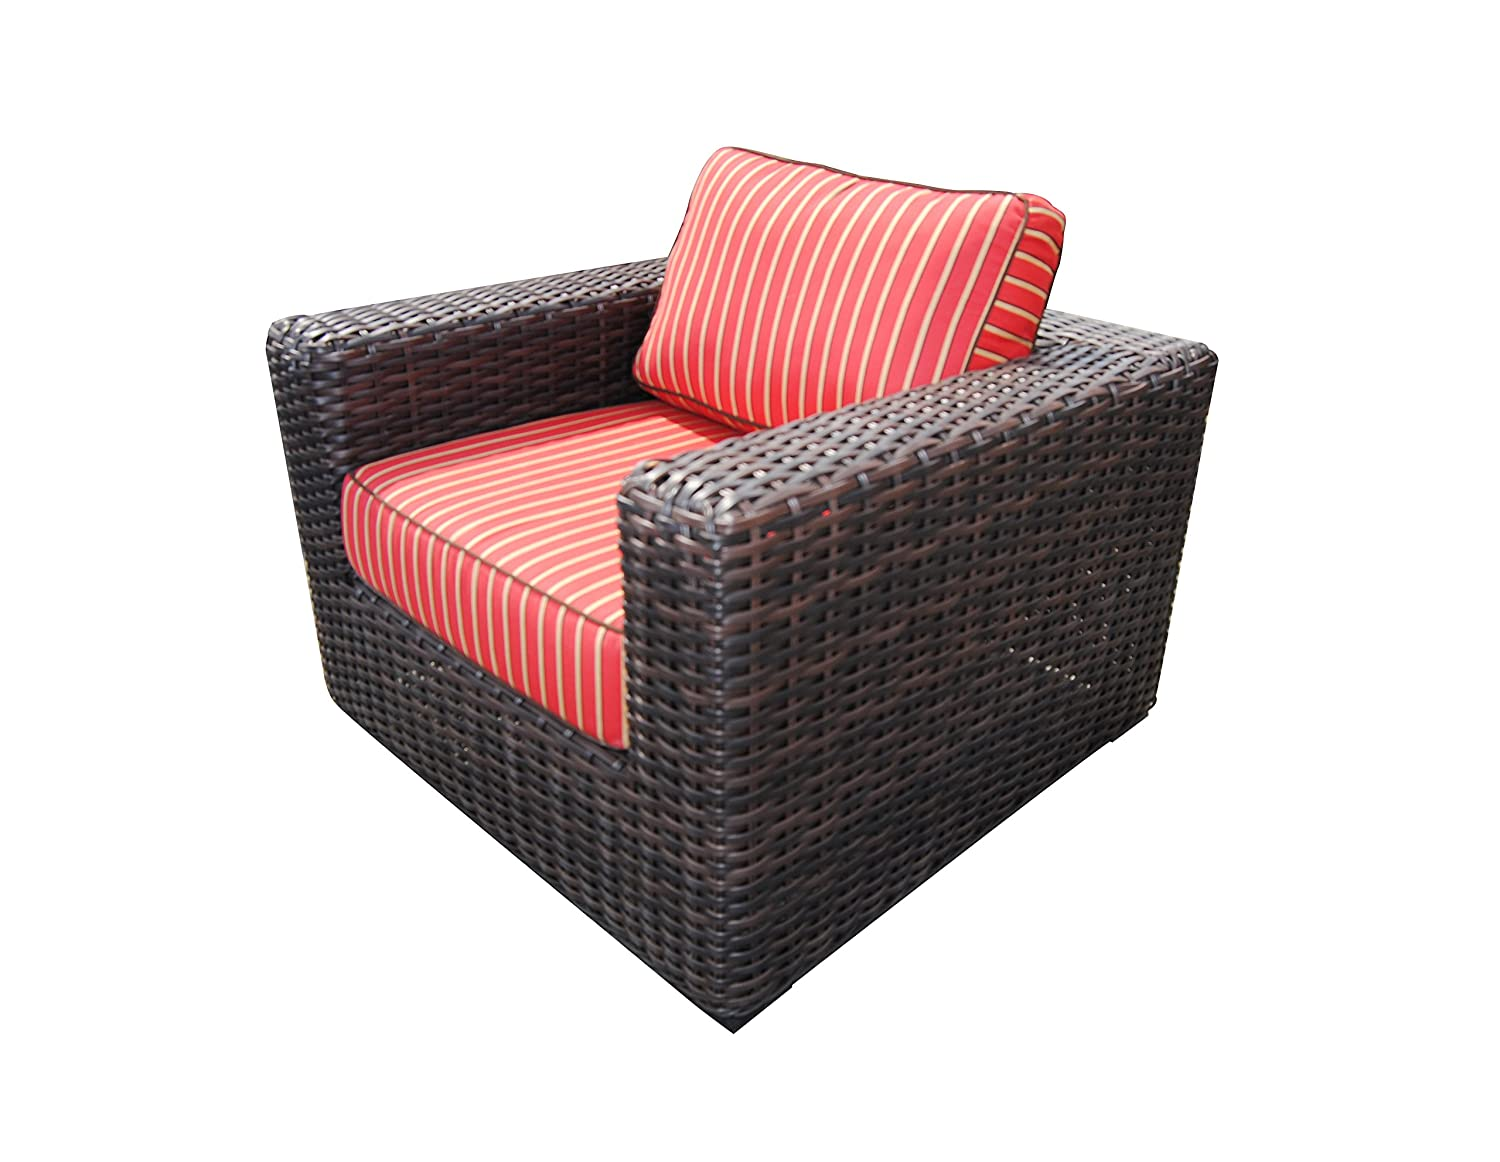 Amazon.com: Teva Patio Santa Monica Patio Club silla de ...